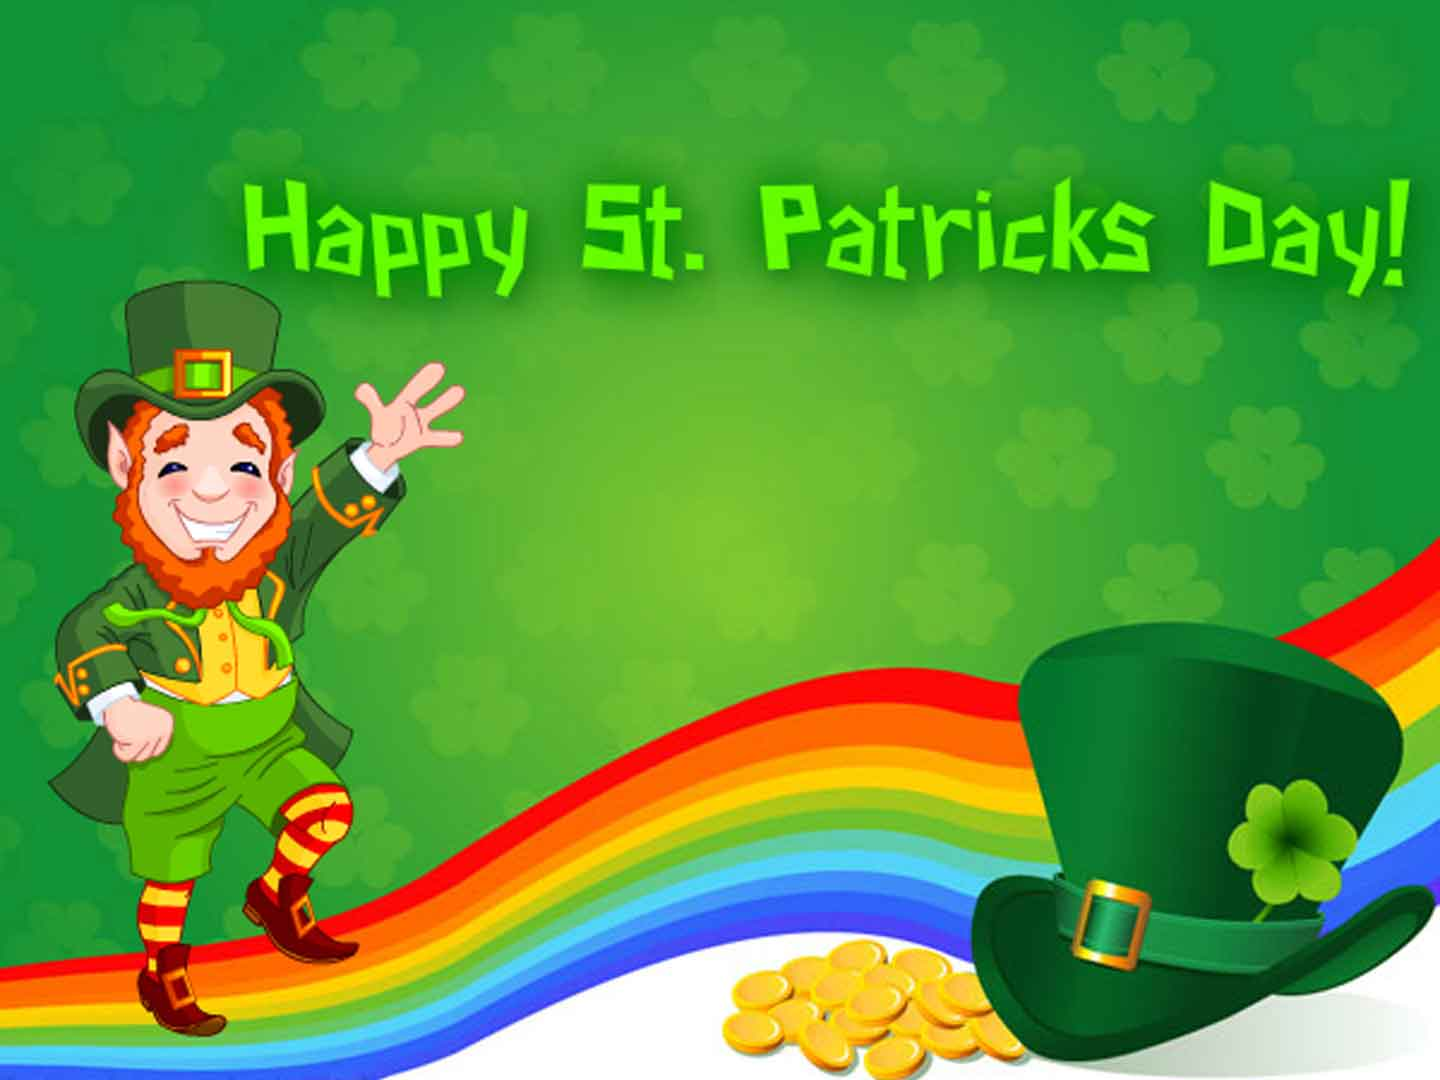 Free Wallpapers - Happy St. Patricks Day Wallpaper wallpaper